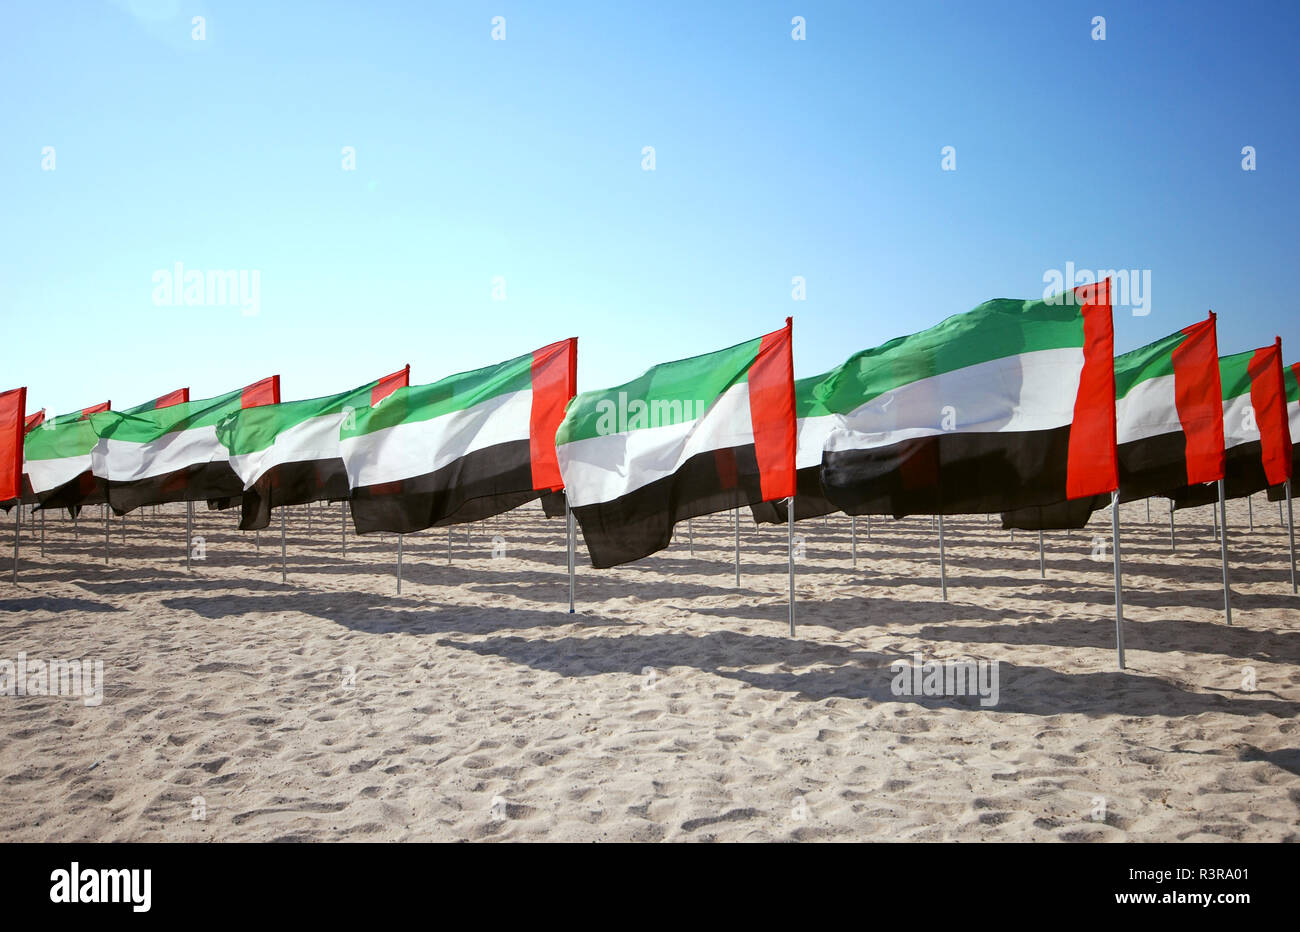 Many flags United Arab Emirates for the anniversary celebration on the beach. UAE Natoinal day. UAE celebrates National Day on 2nd December every year Stock Photo